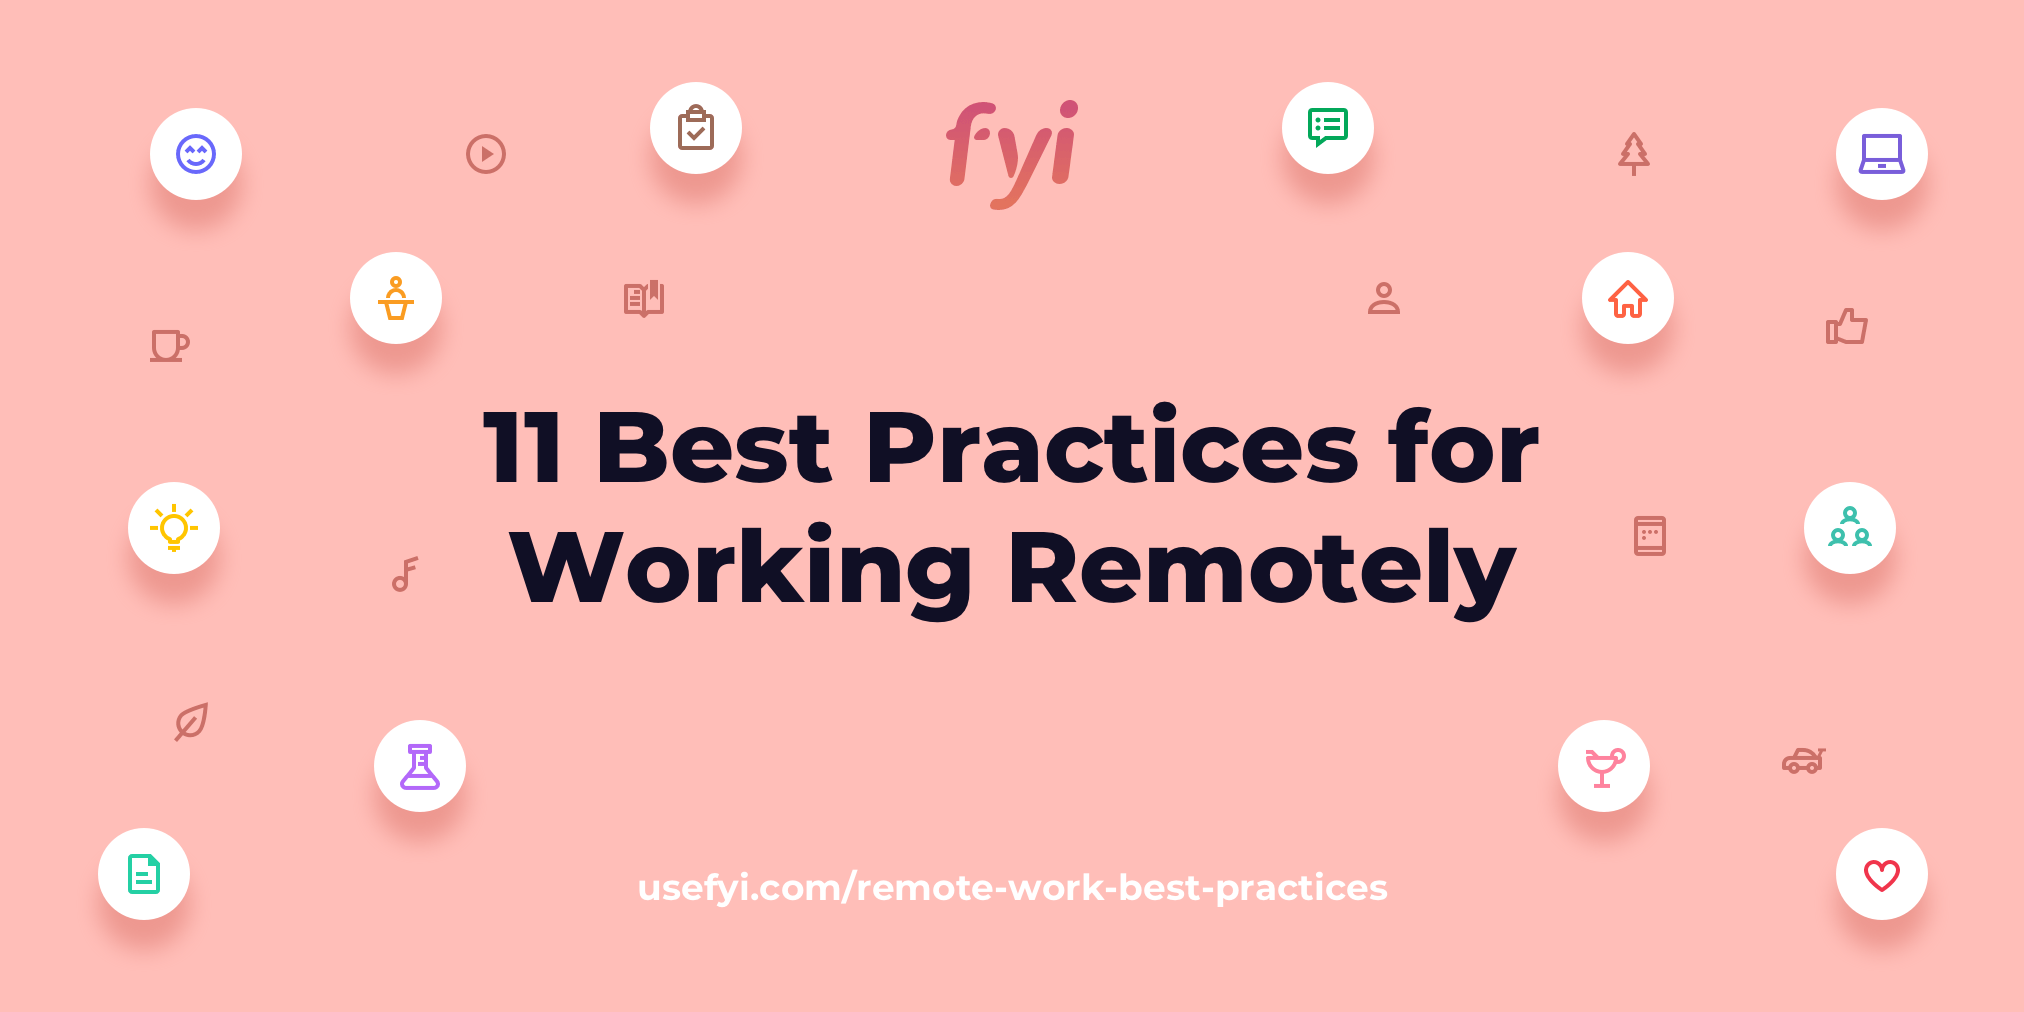 11 Best Practices for Working Remotely